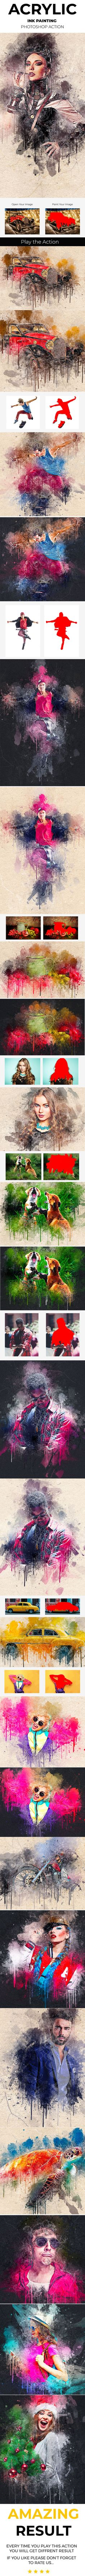 #Acrylic Ink #Painting #Photoshop Action - Photo Effects Actions